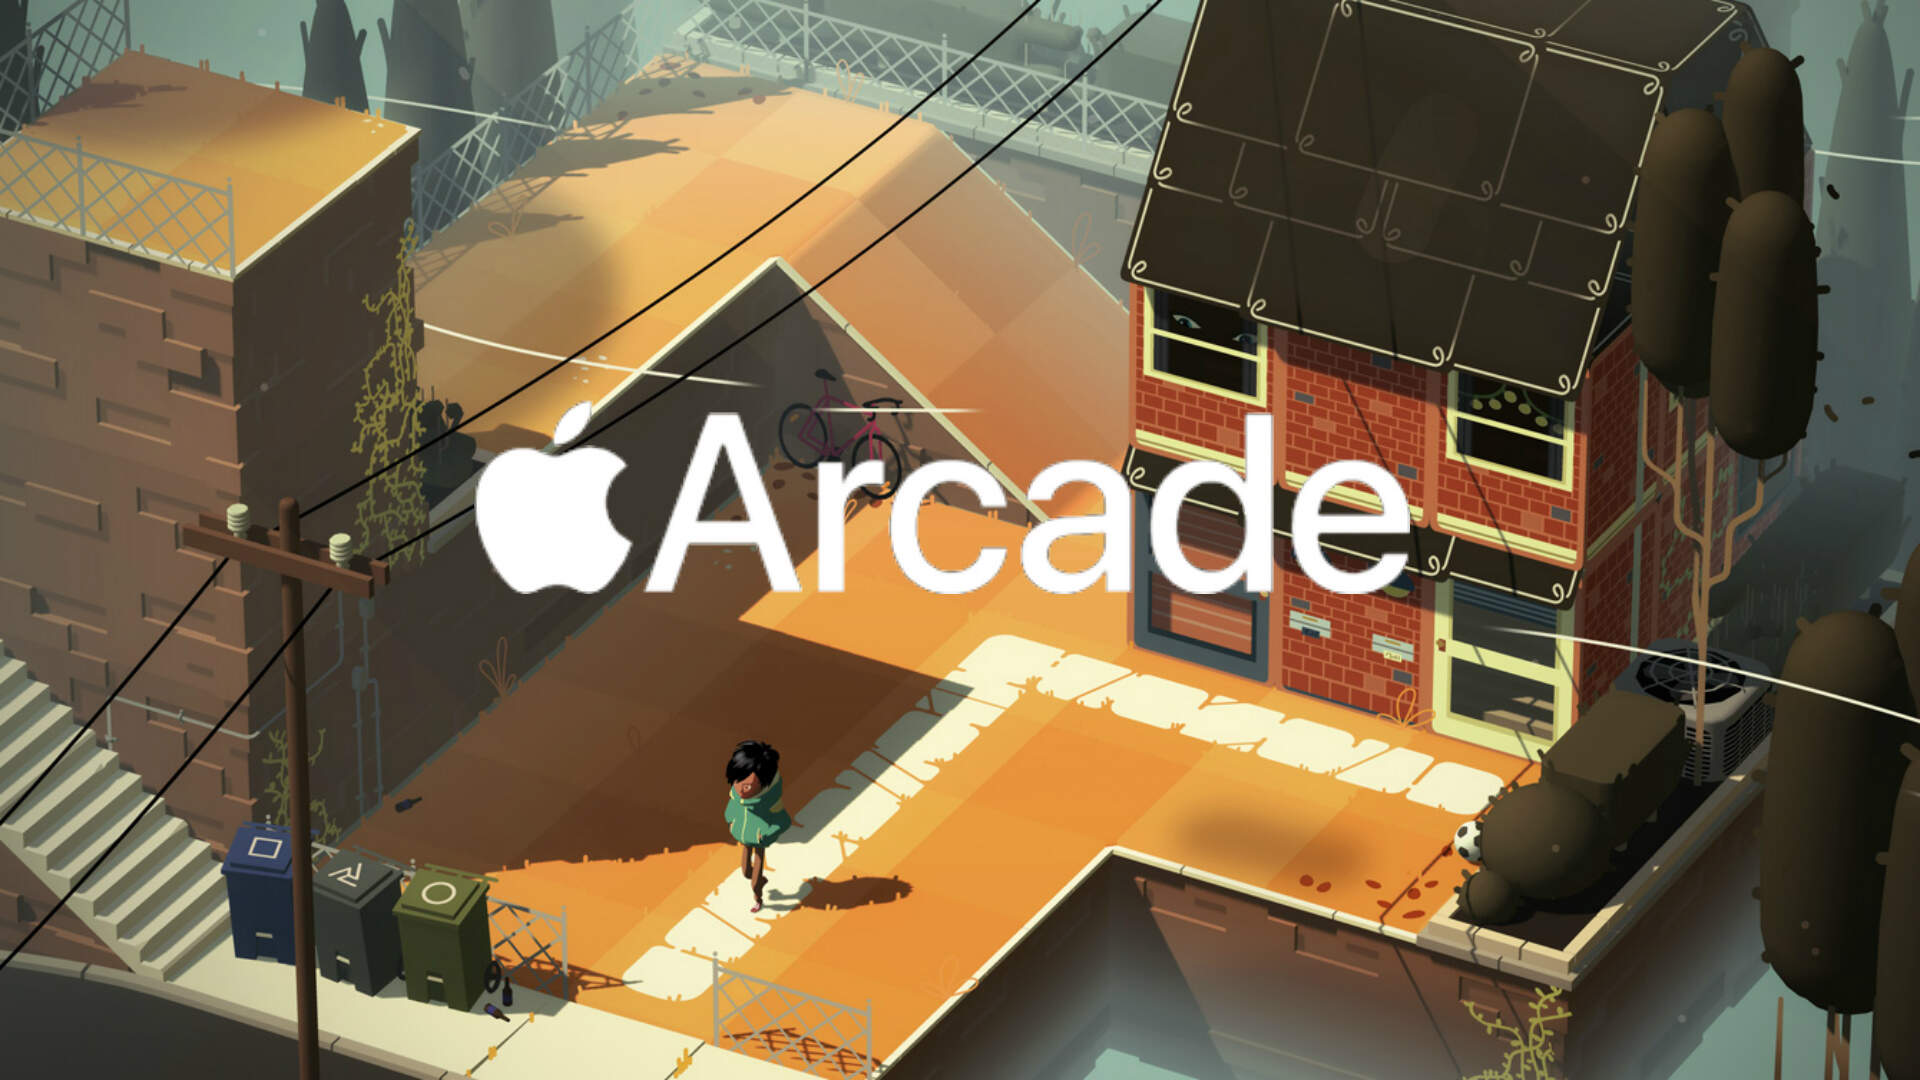 """Apple Arcade Games Will Be Great for Families, Respect User Privacy and Will Not Have Ads or Require Any Additional Purchases"""